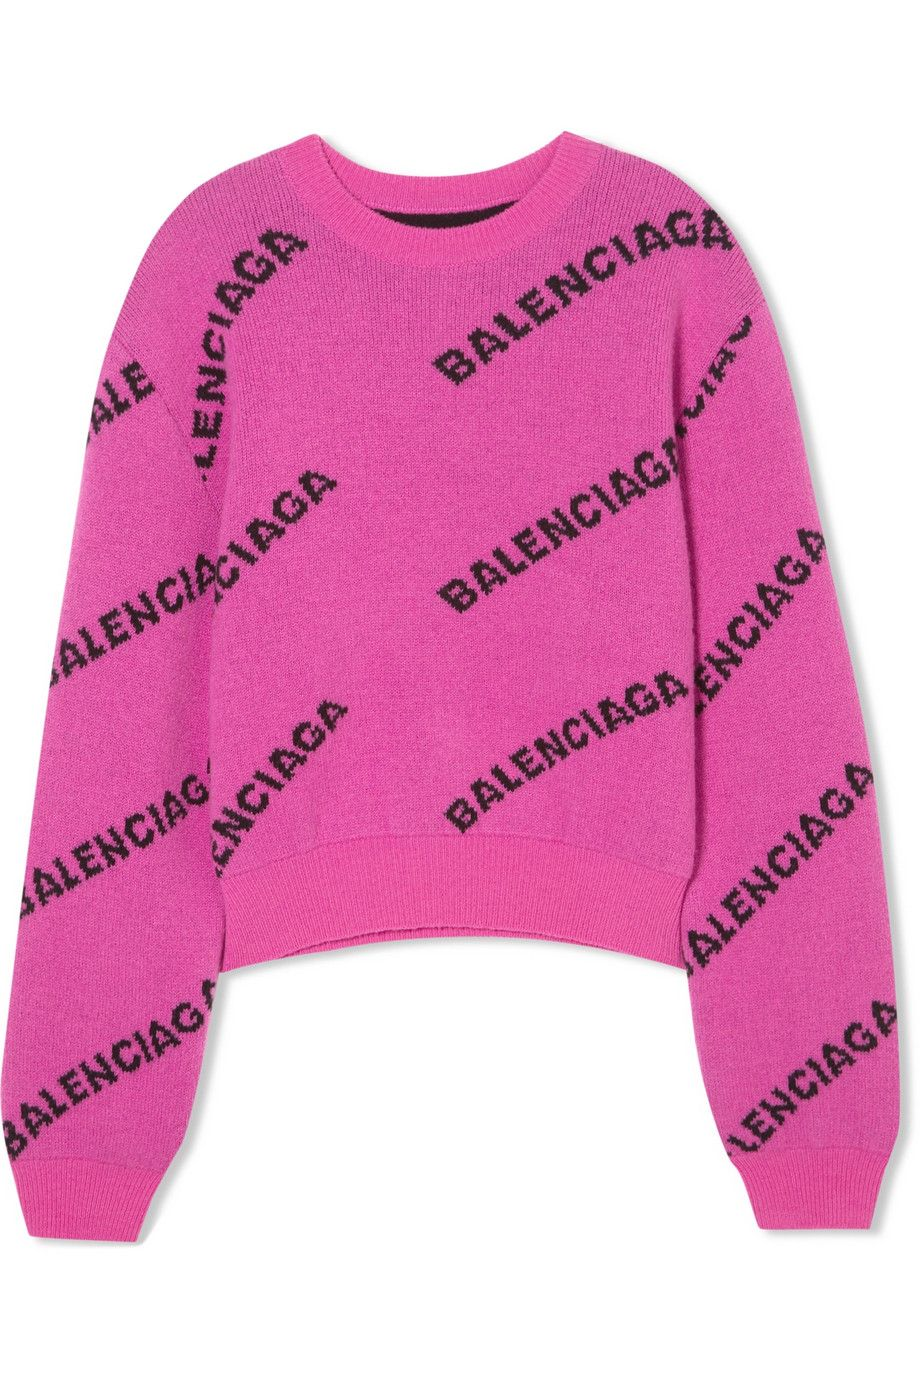 913a7454 Balenciaga Logo Sweaters | Clothes | Wool sweaters, Sweaters ...